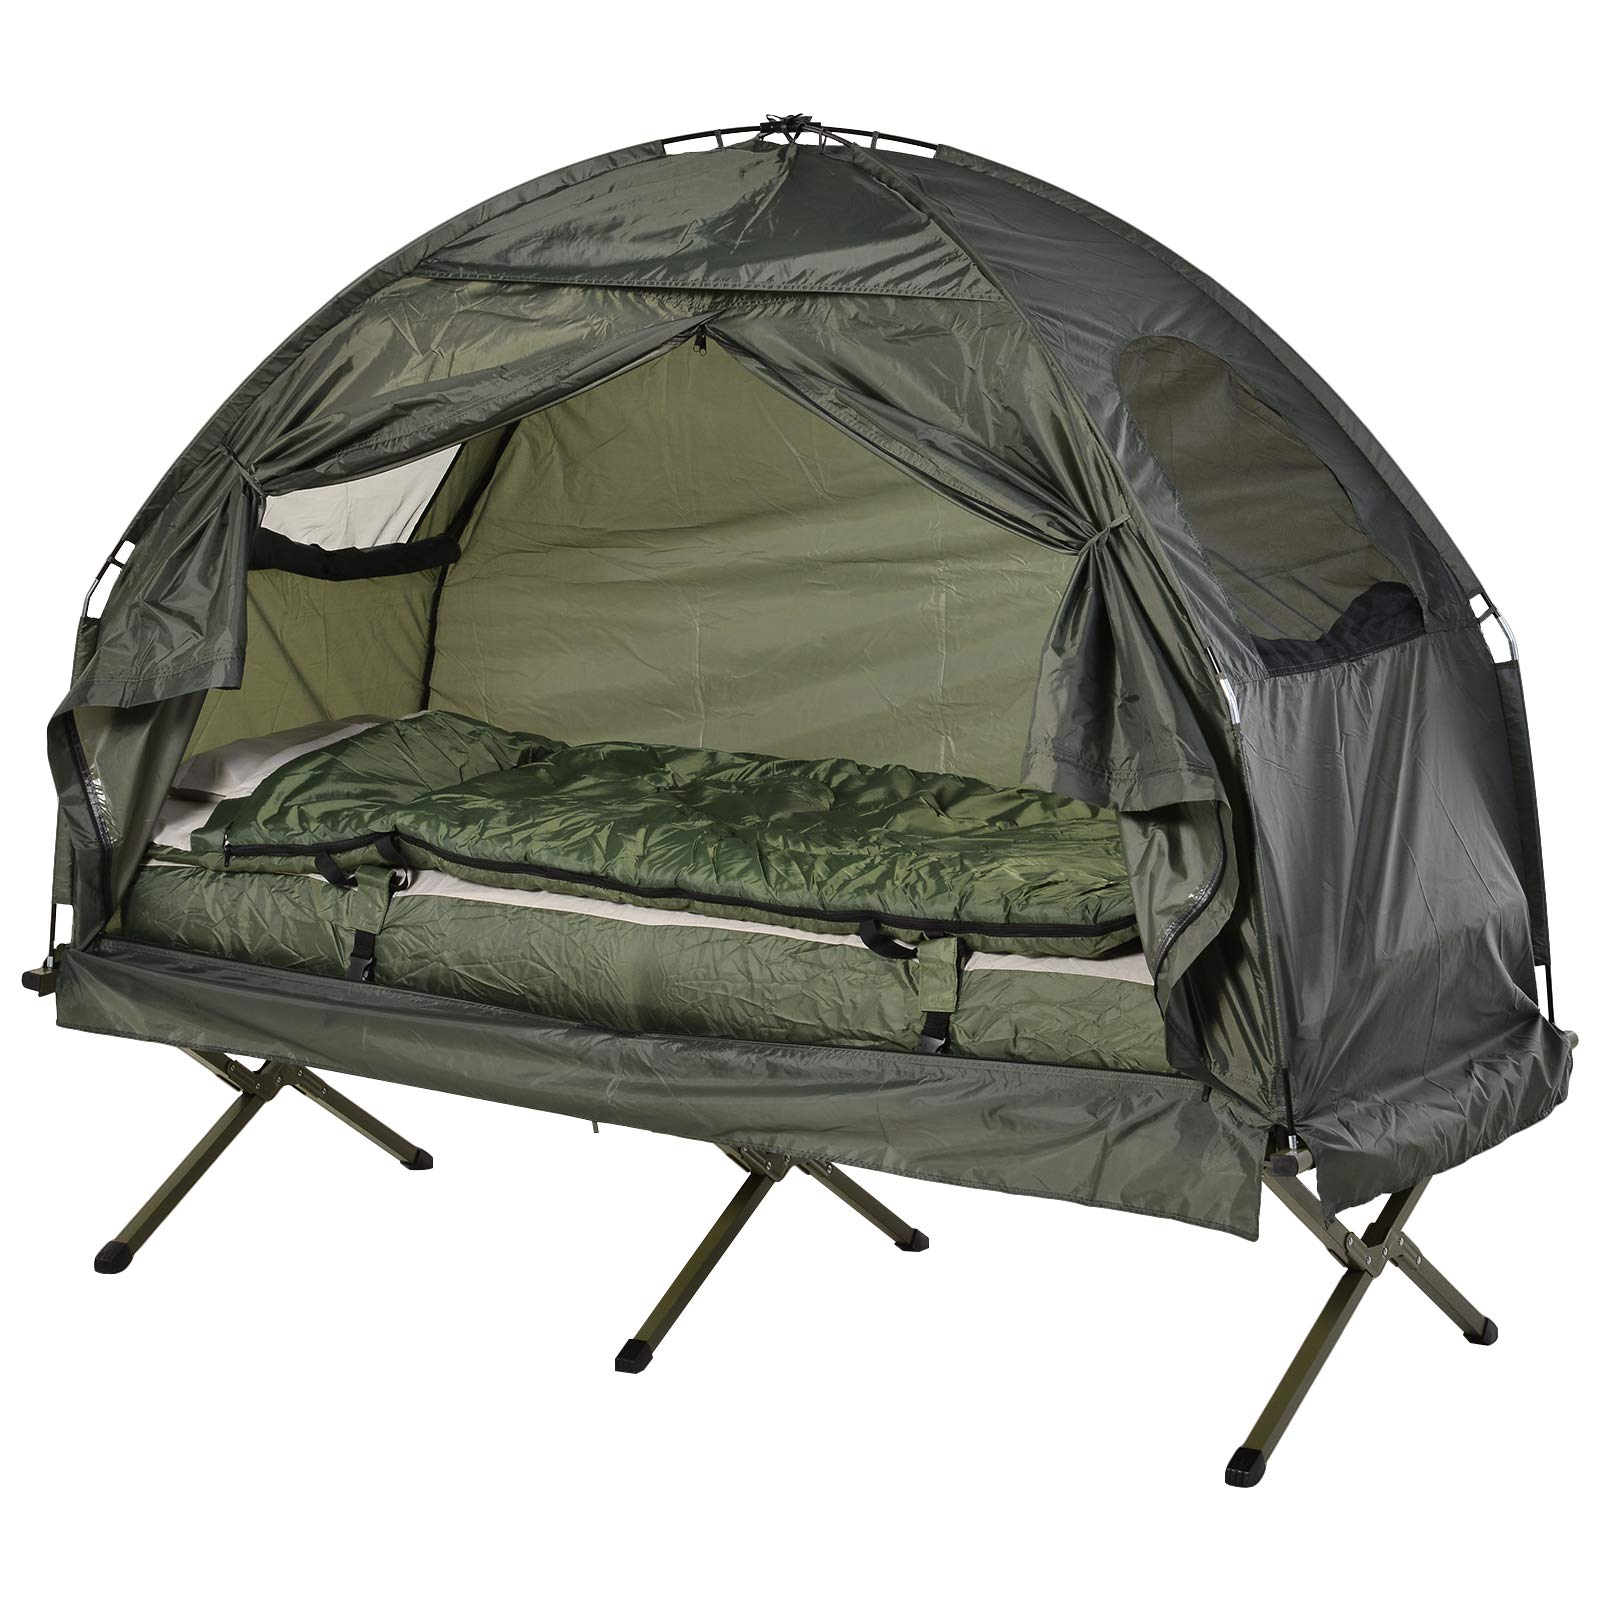 Outsunny All-in One Portable Camping Cot Tent with Air Mattress, Sleeping Bag, and Pillow